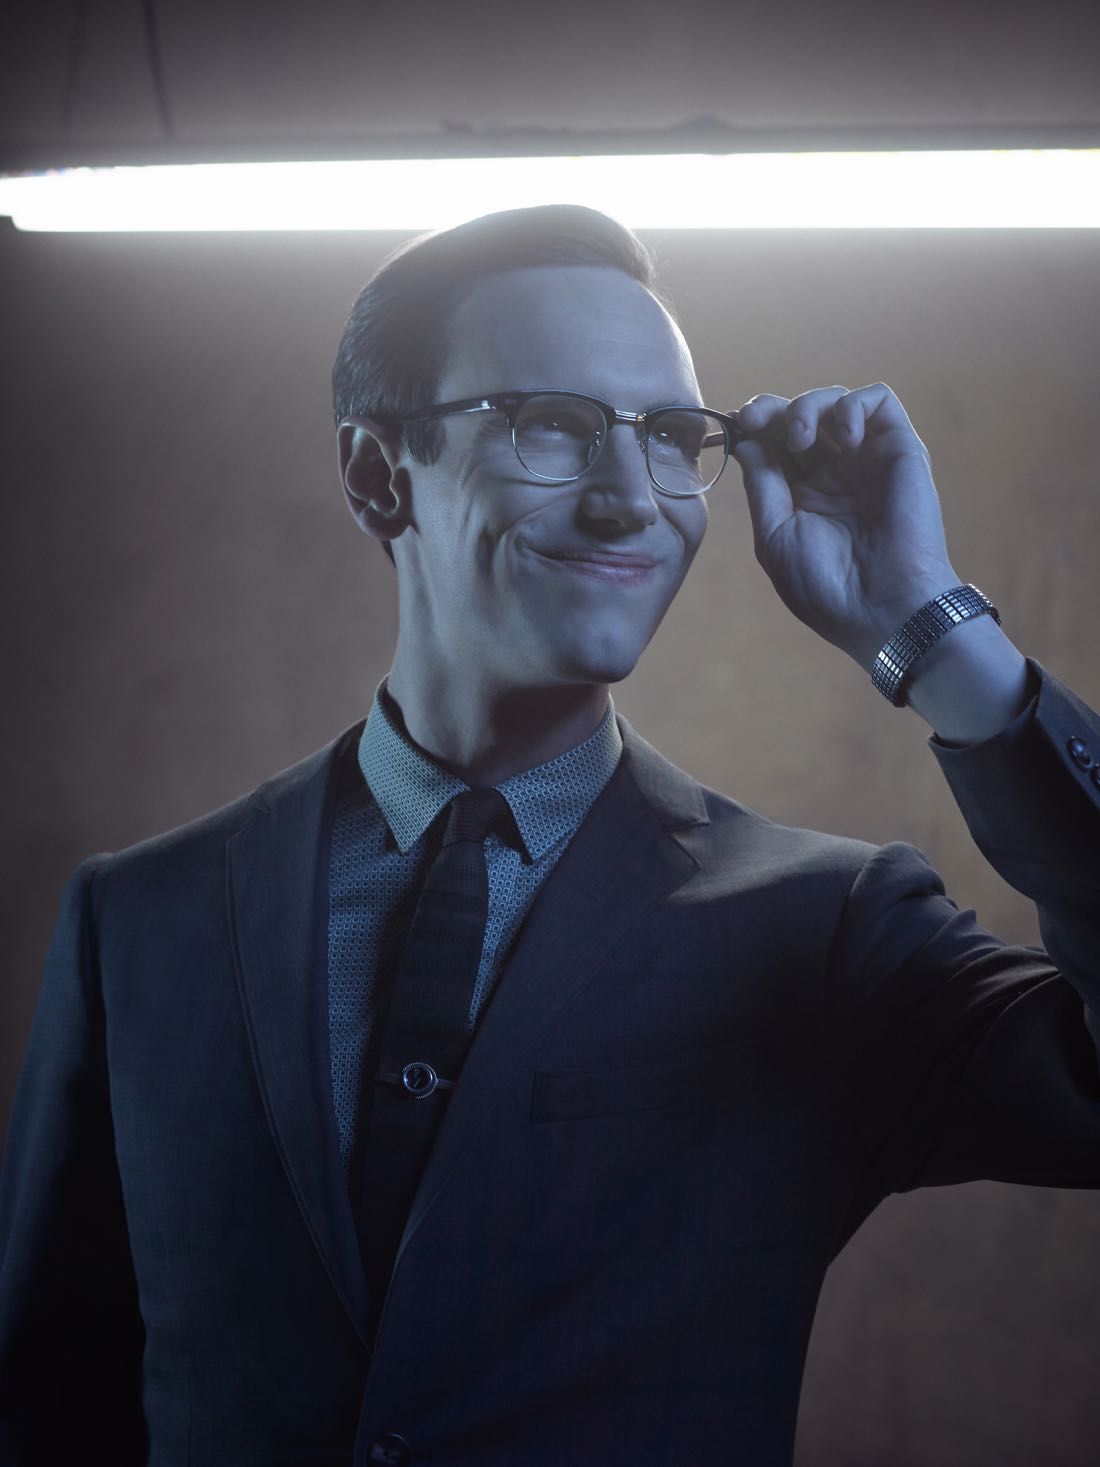 GOTHAM: Cory Michael Smith. Season 3 of GOTHAM premieres Monday, Sept. 19 (8:00-9:00 PM ET/PT) on FOX. ©2016 Fox Broadcasting Co. Cr: Mark Seliger/FOX